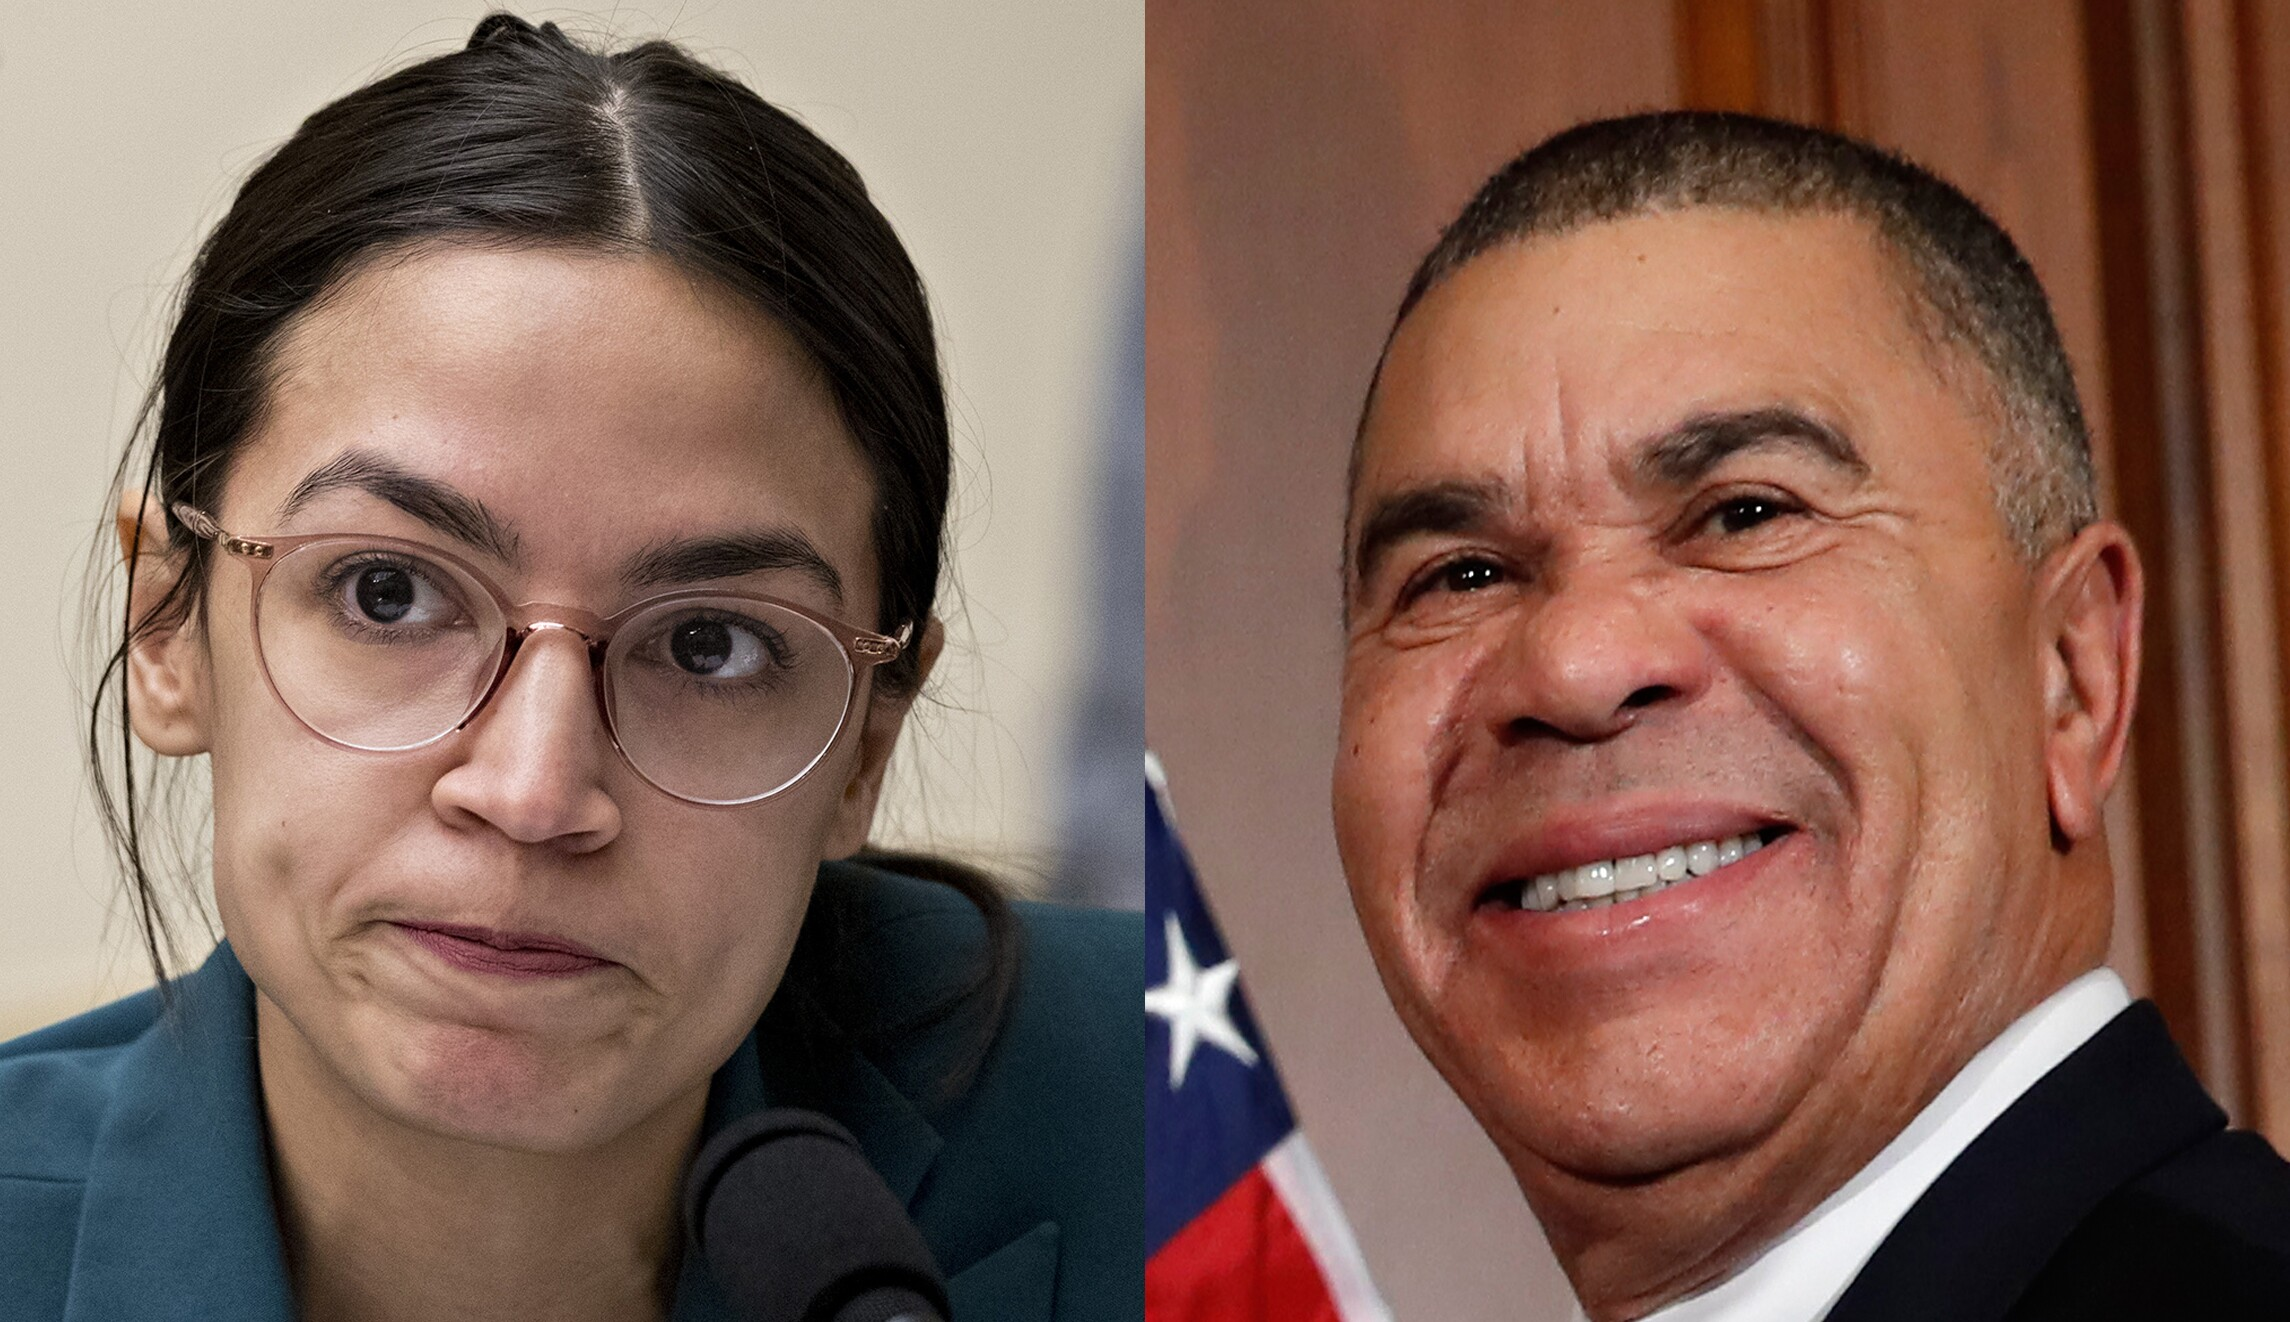 Democratic congressman goes after AOC: 'Their ignorance is beyond belief'